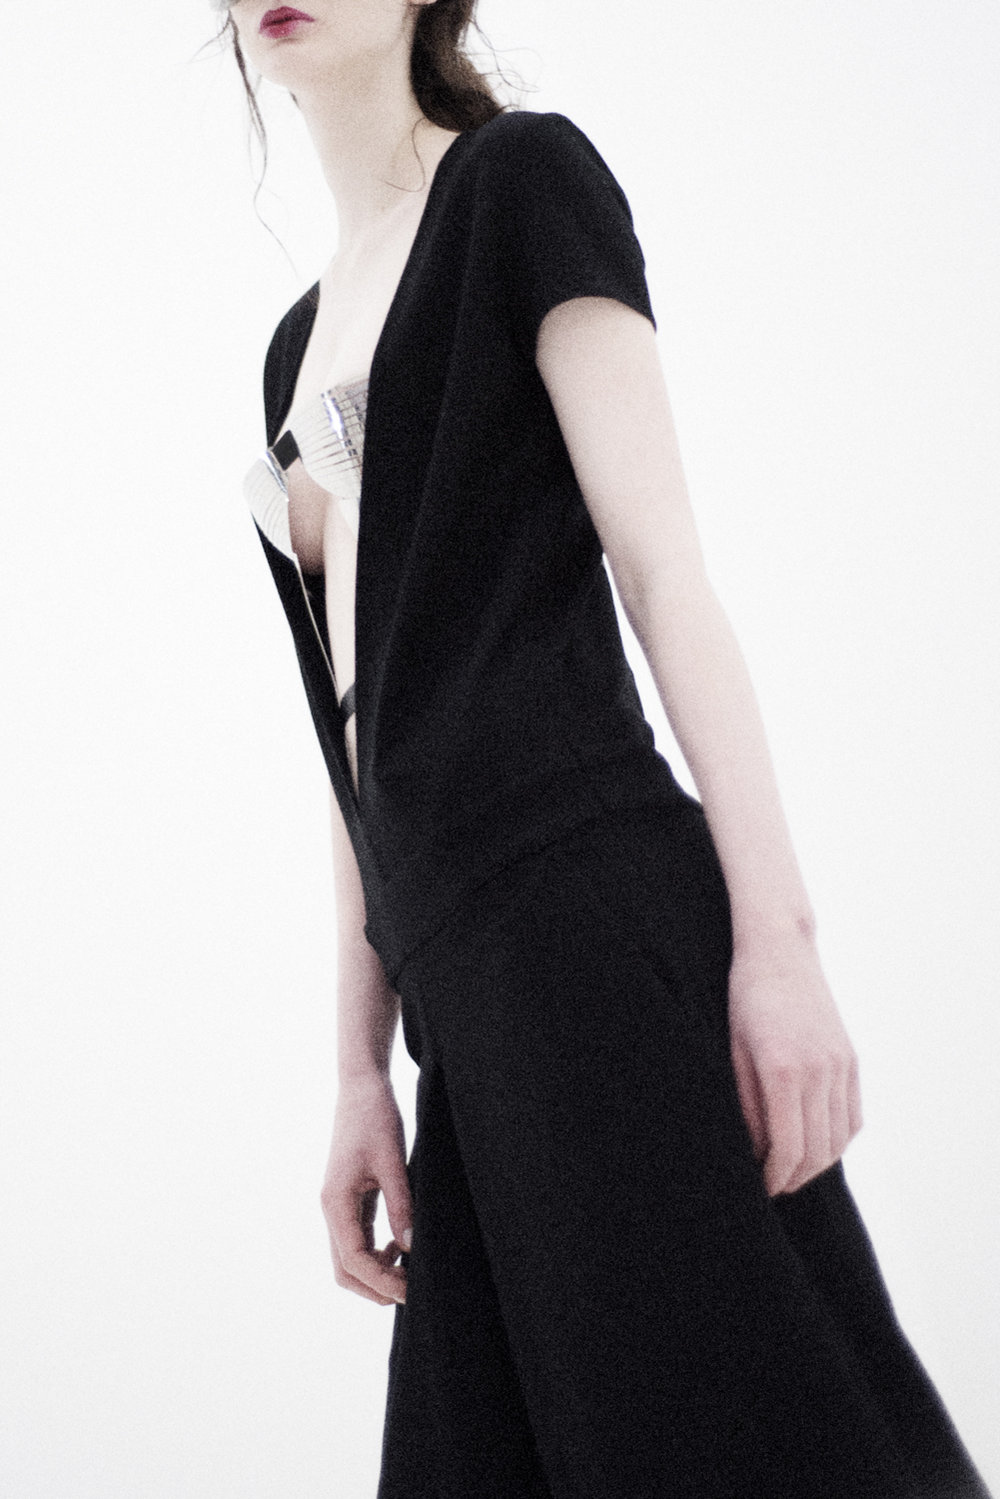 jumpsuit Minimal To, metal corset Design Digest